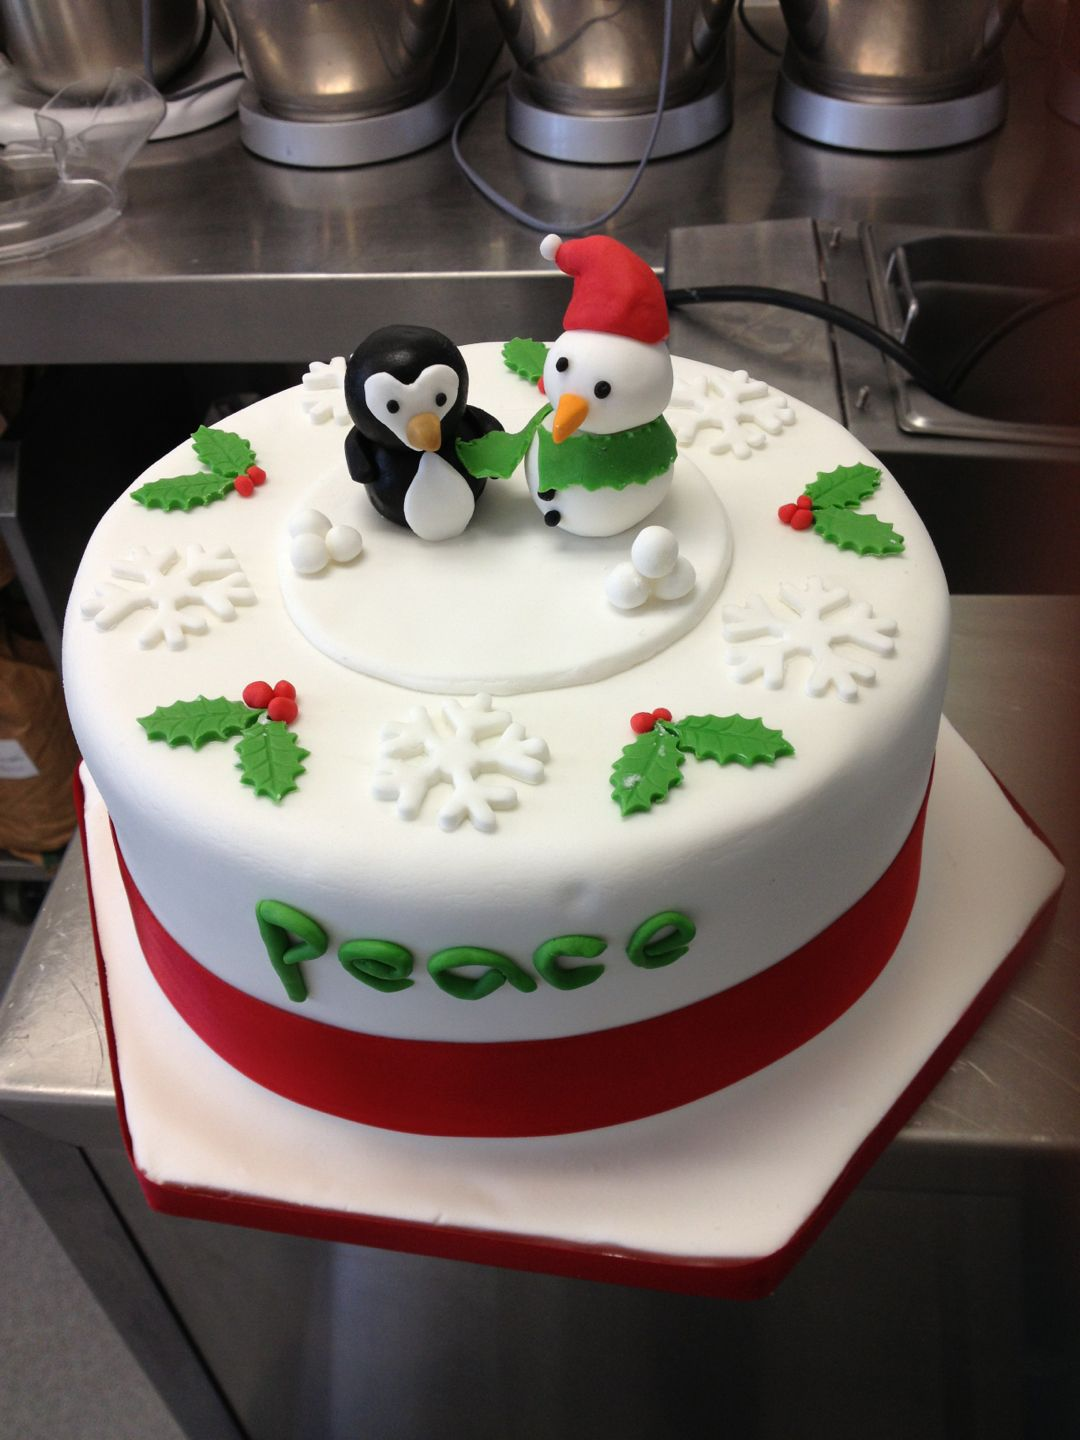 Round Christmas cake with penguin & snowman toppers and